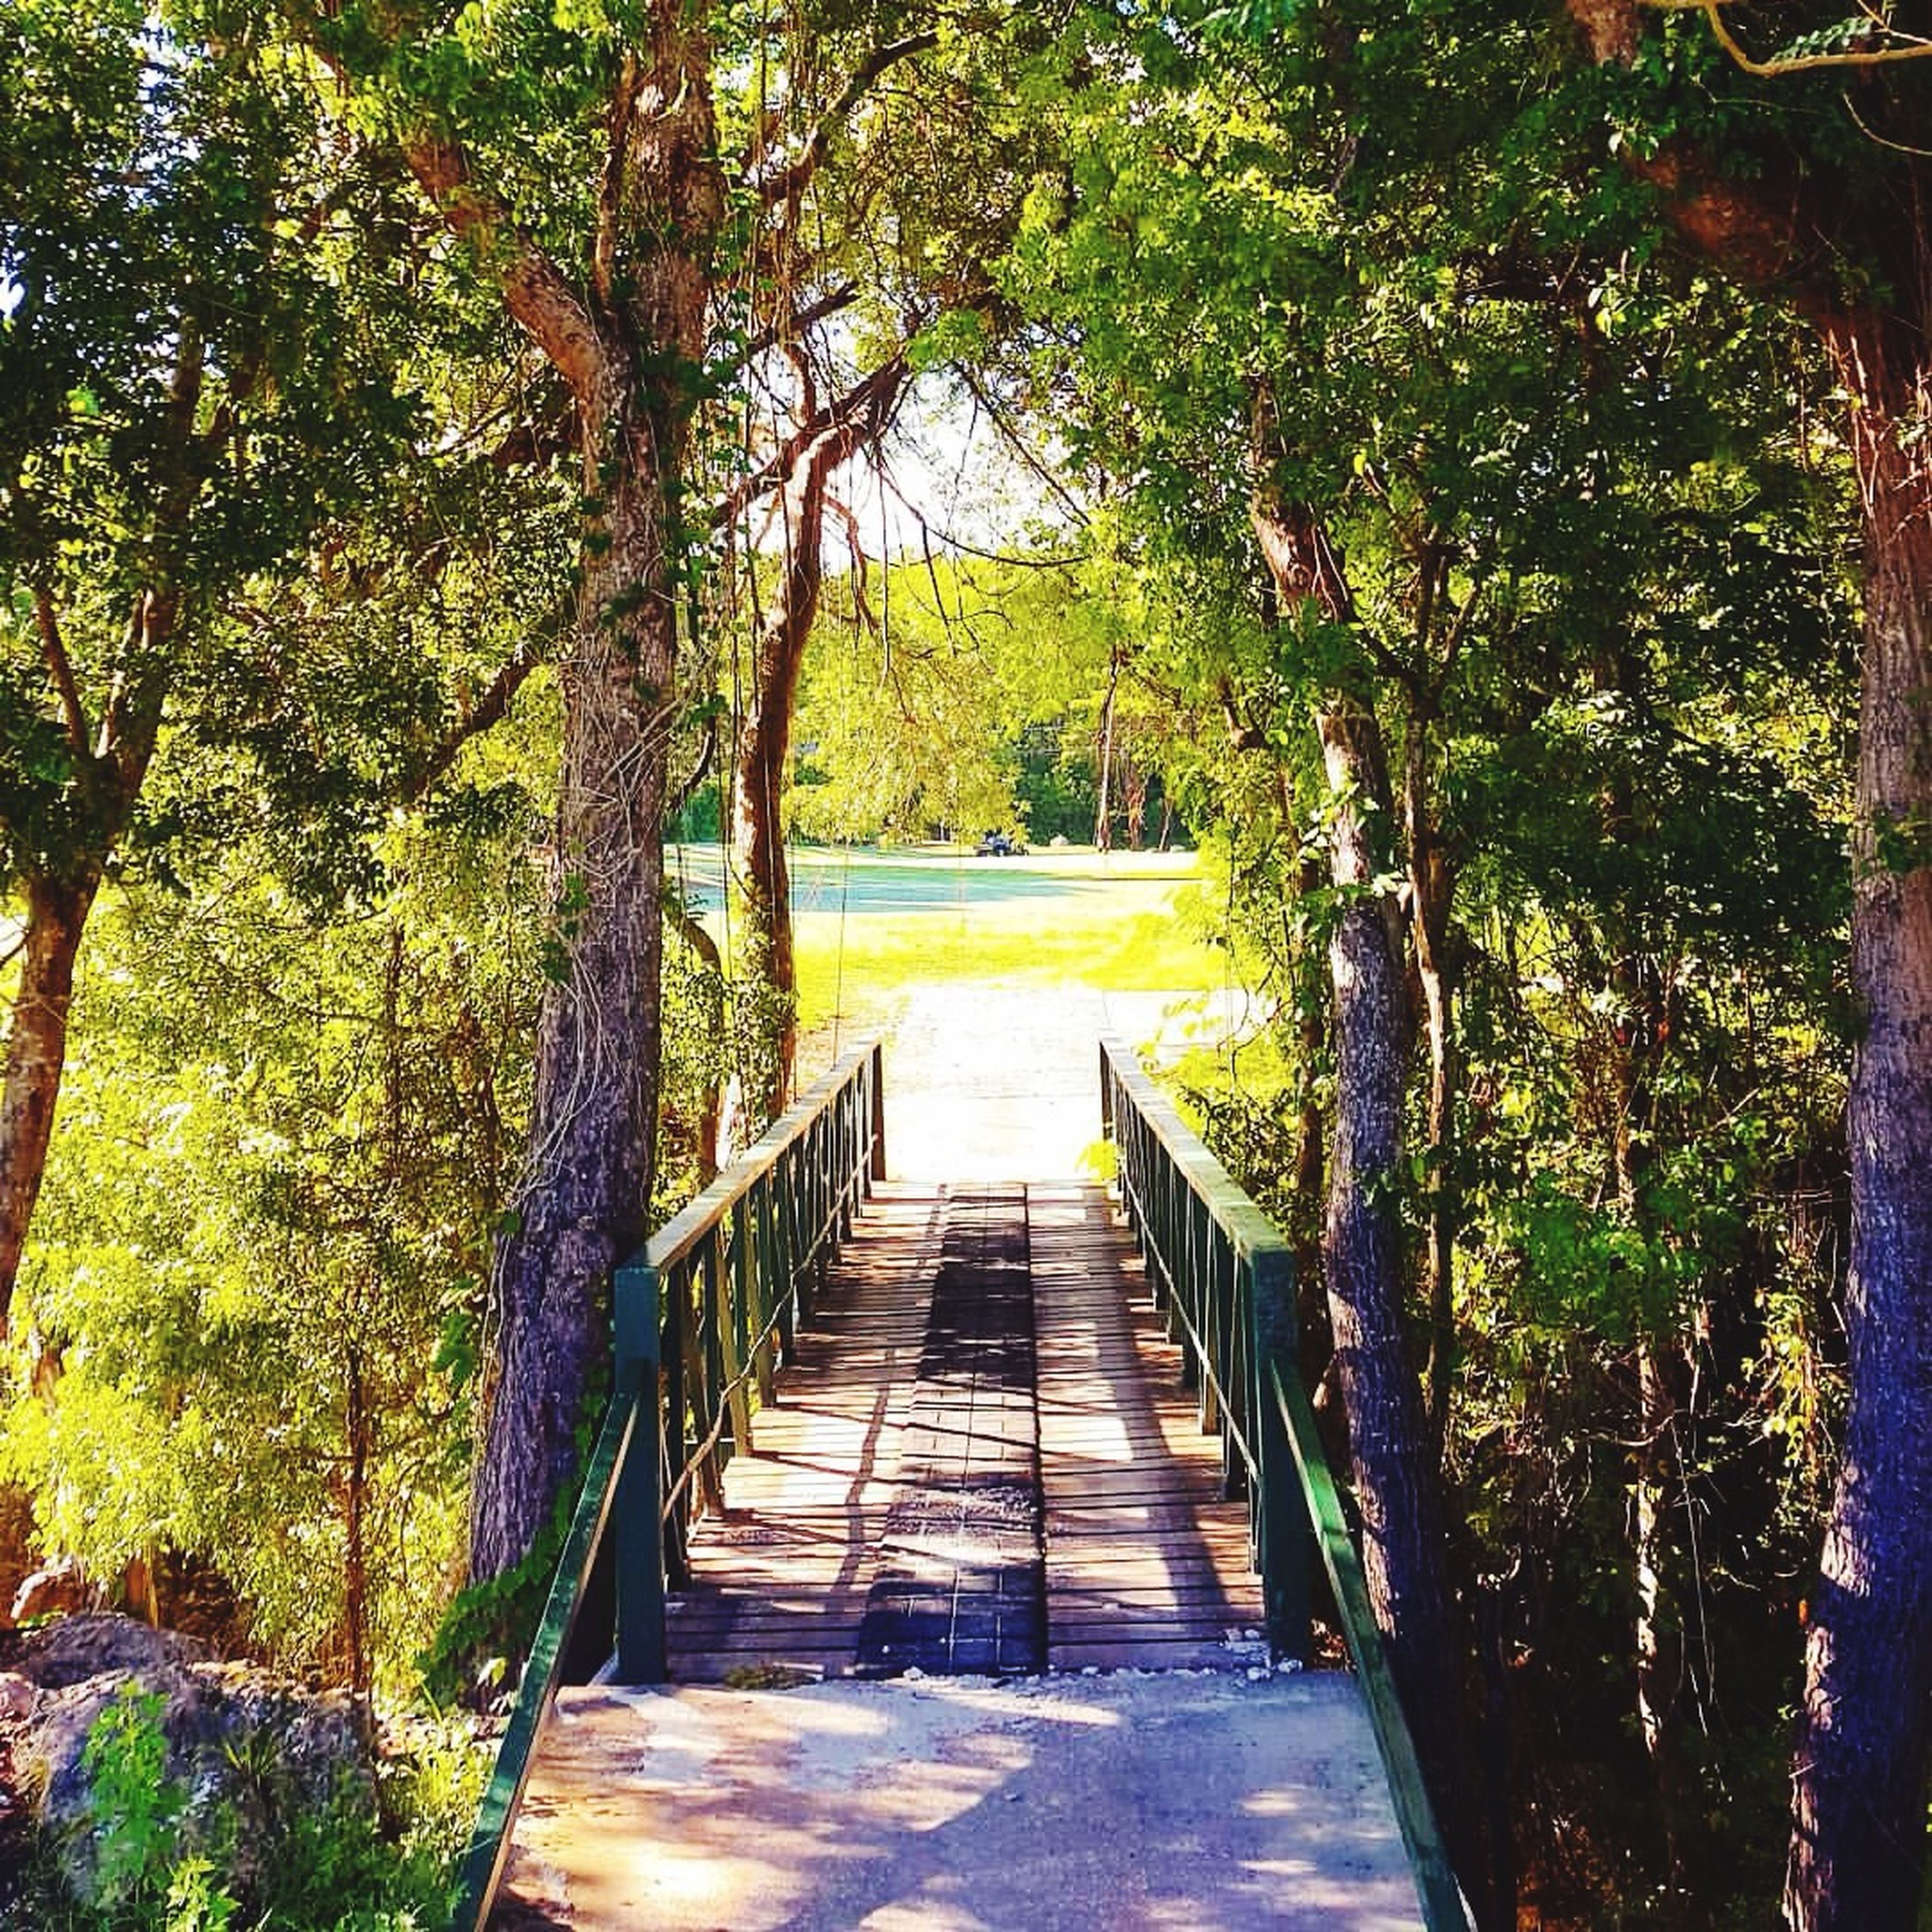 the way forward, tree, steps, walkway, built structure, narrow, growth, railing, footpath, architecture, pathway, plant, tranquility, nature, leading, diminishing perspective, steps and staircases, footbridge, boardwalk, sunlight